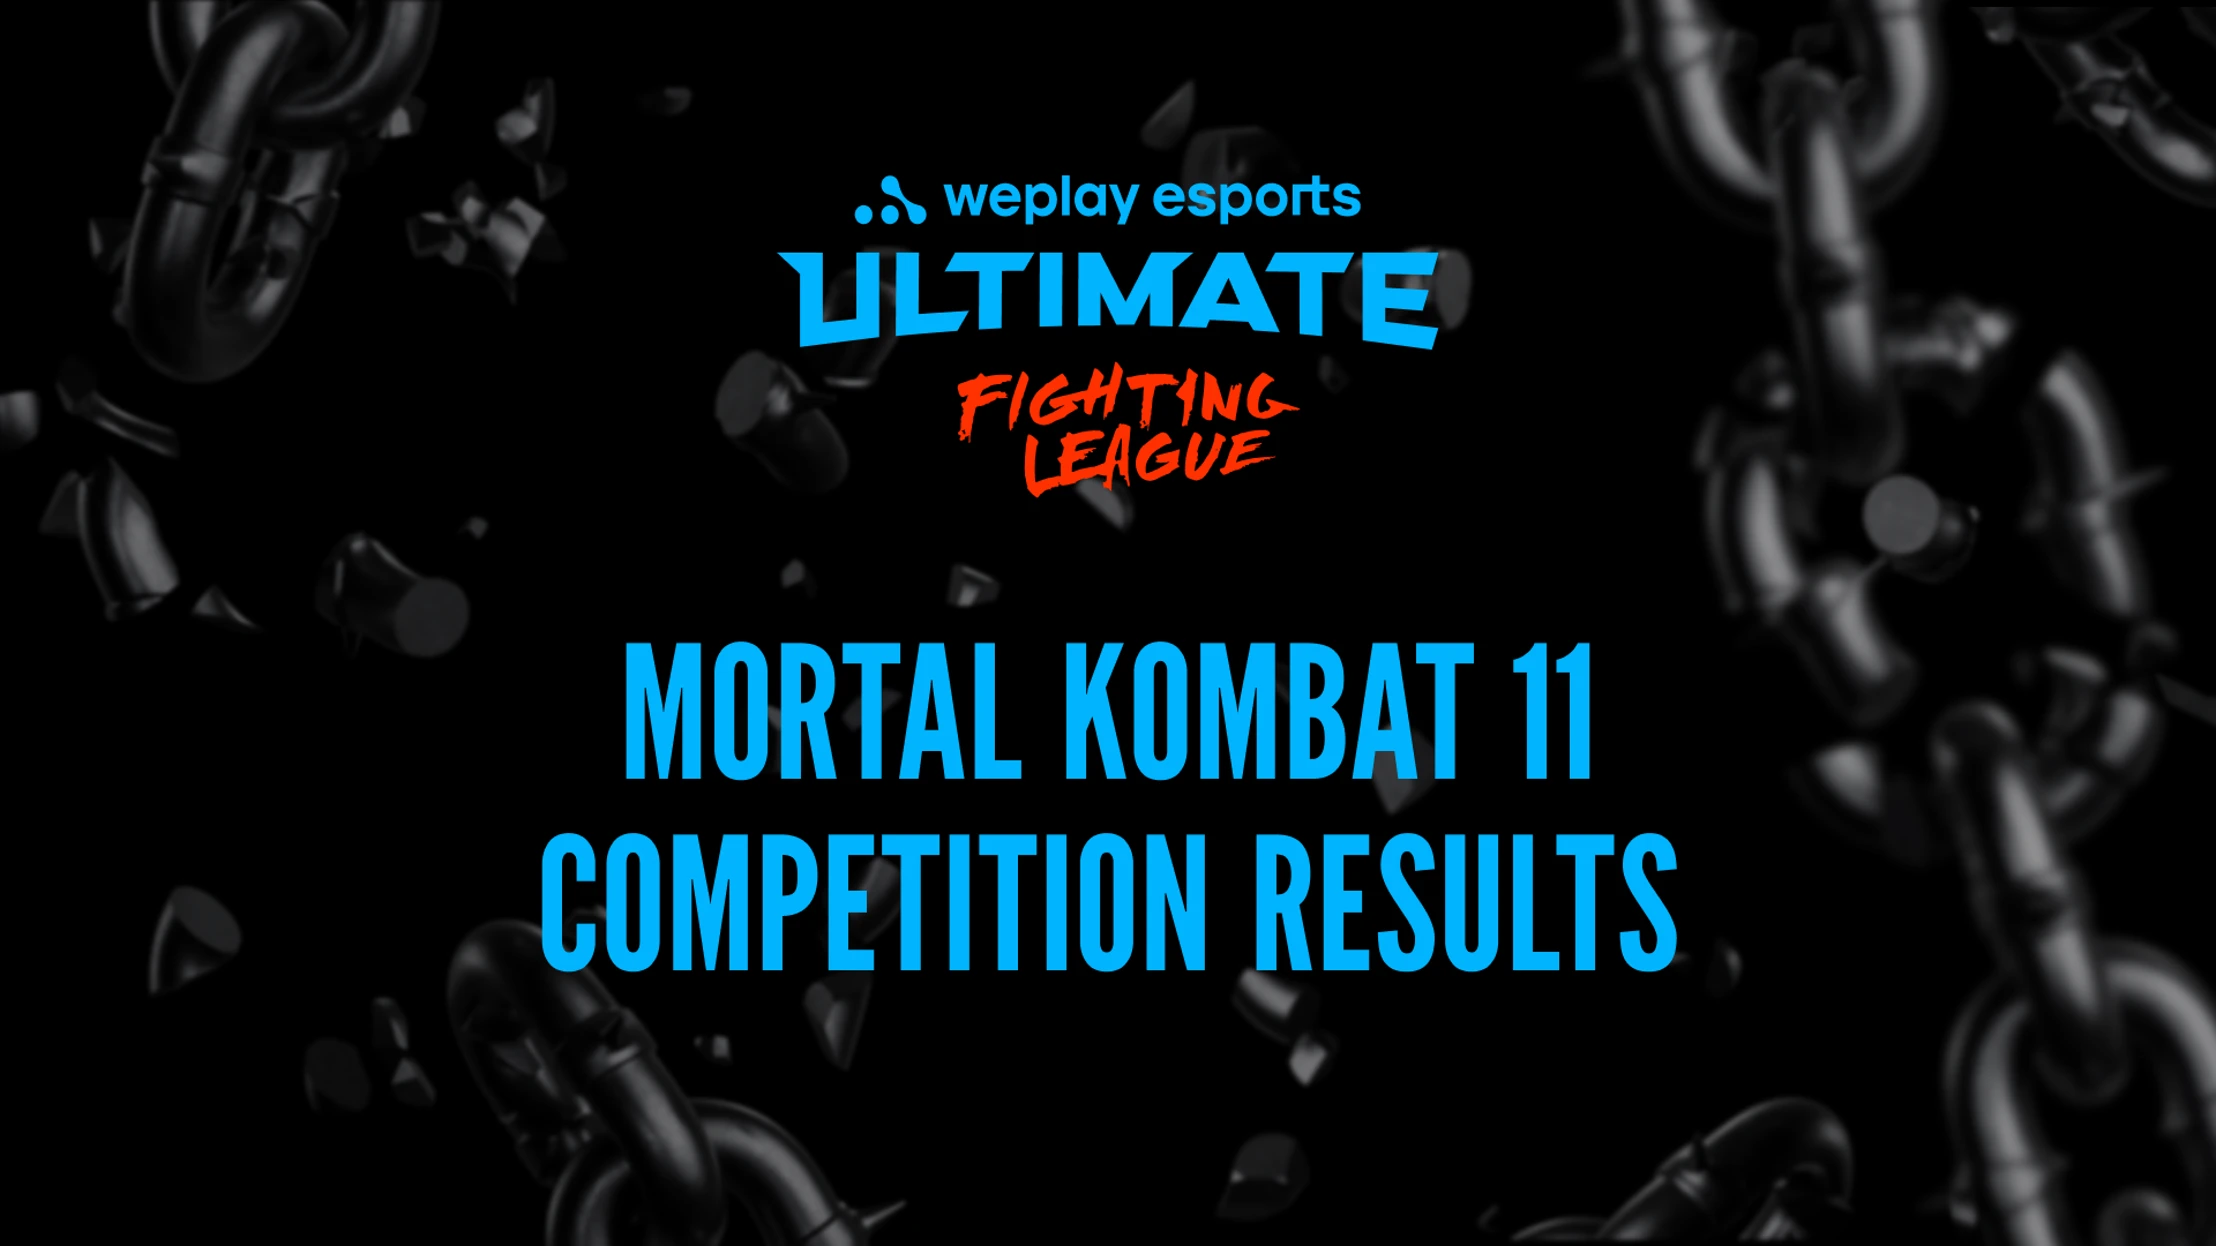 We have the Winner of the WePlay Ultimate Fighting League Season 1 Mortal Kombat 11 Event